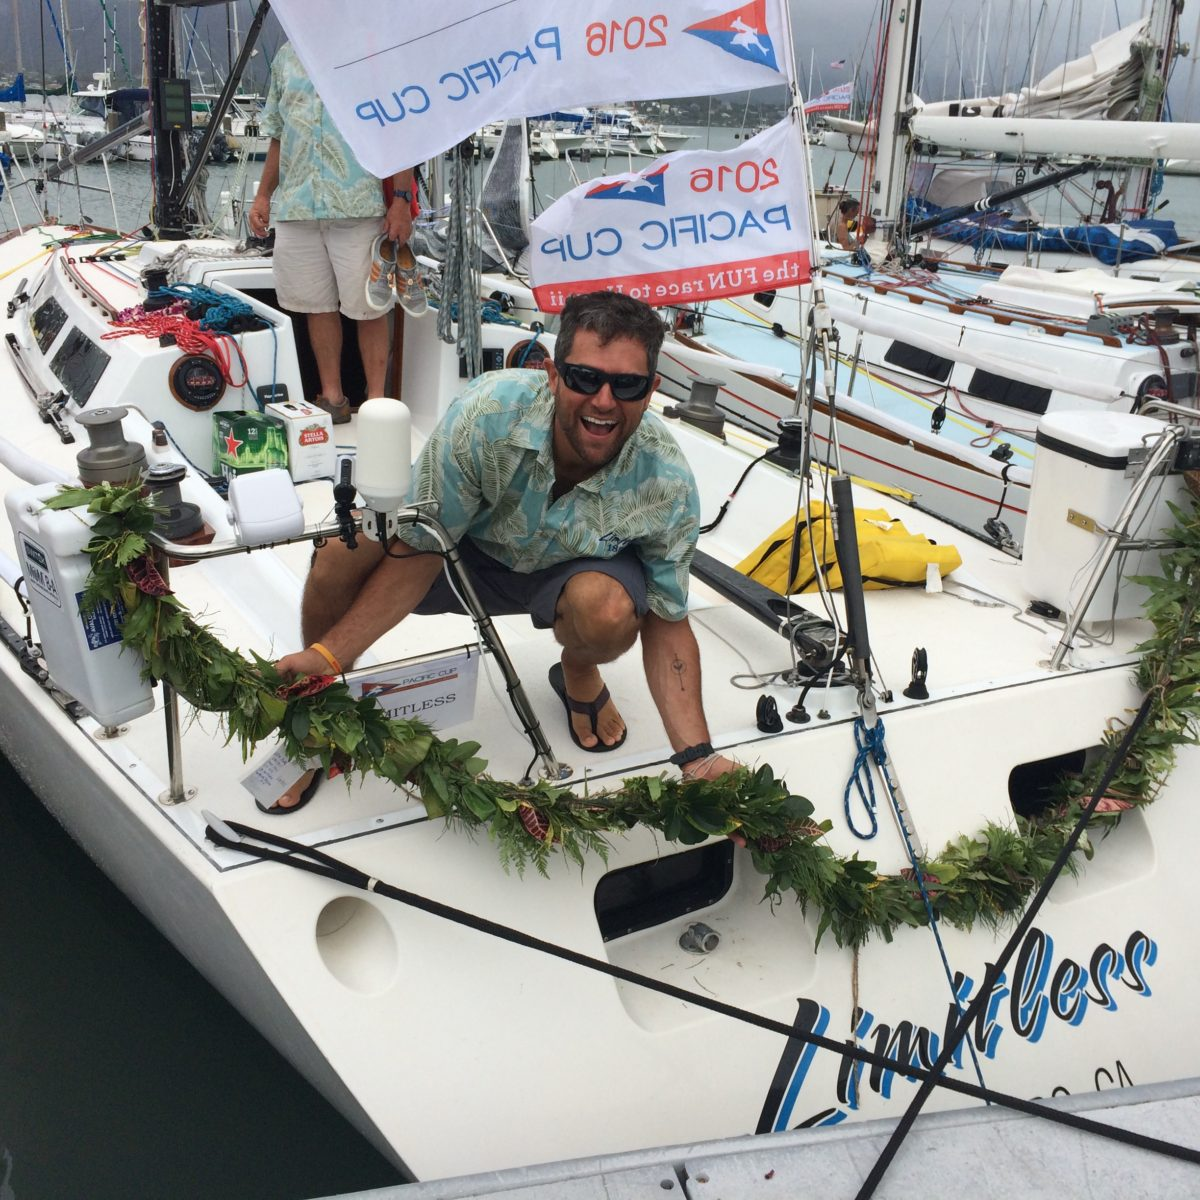 Thank you to everyone who contributed to the boat lei for Limitless!